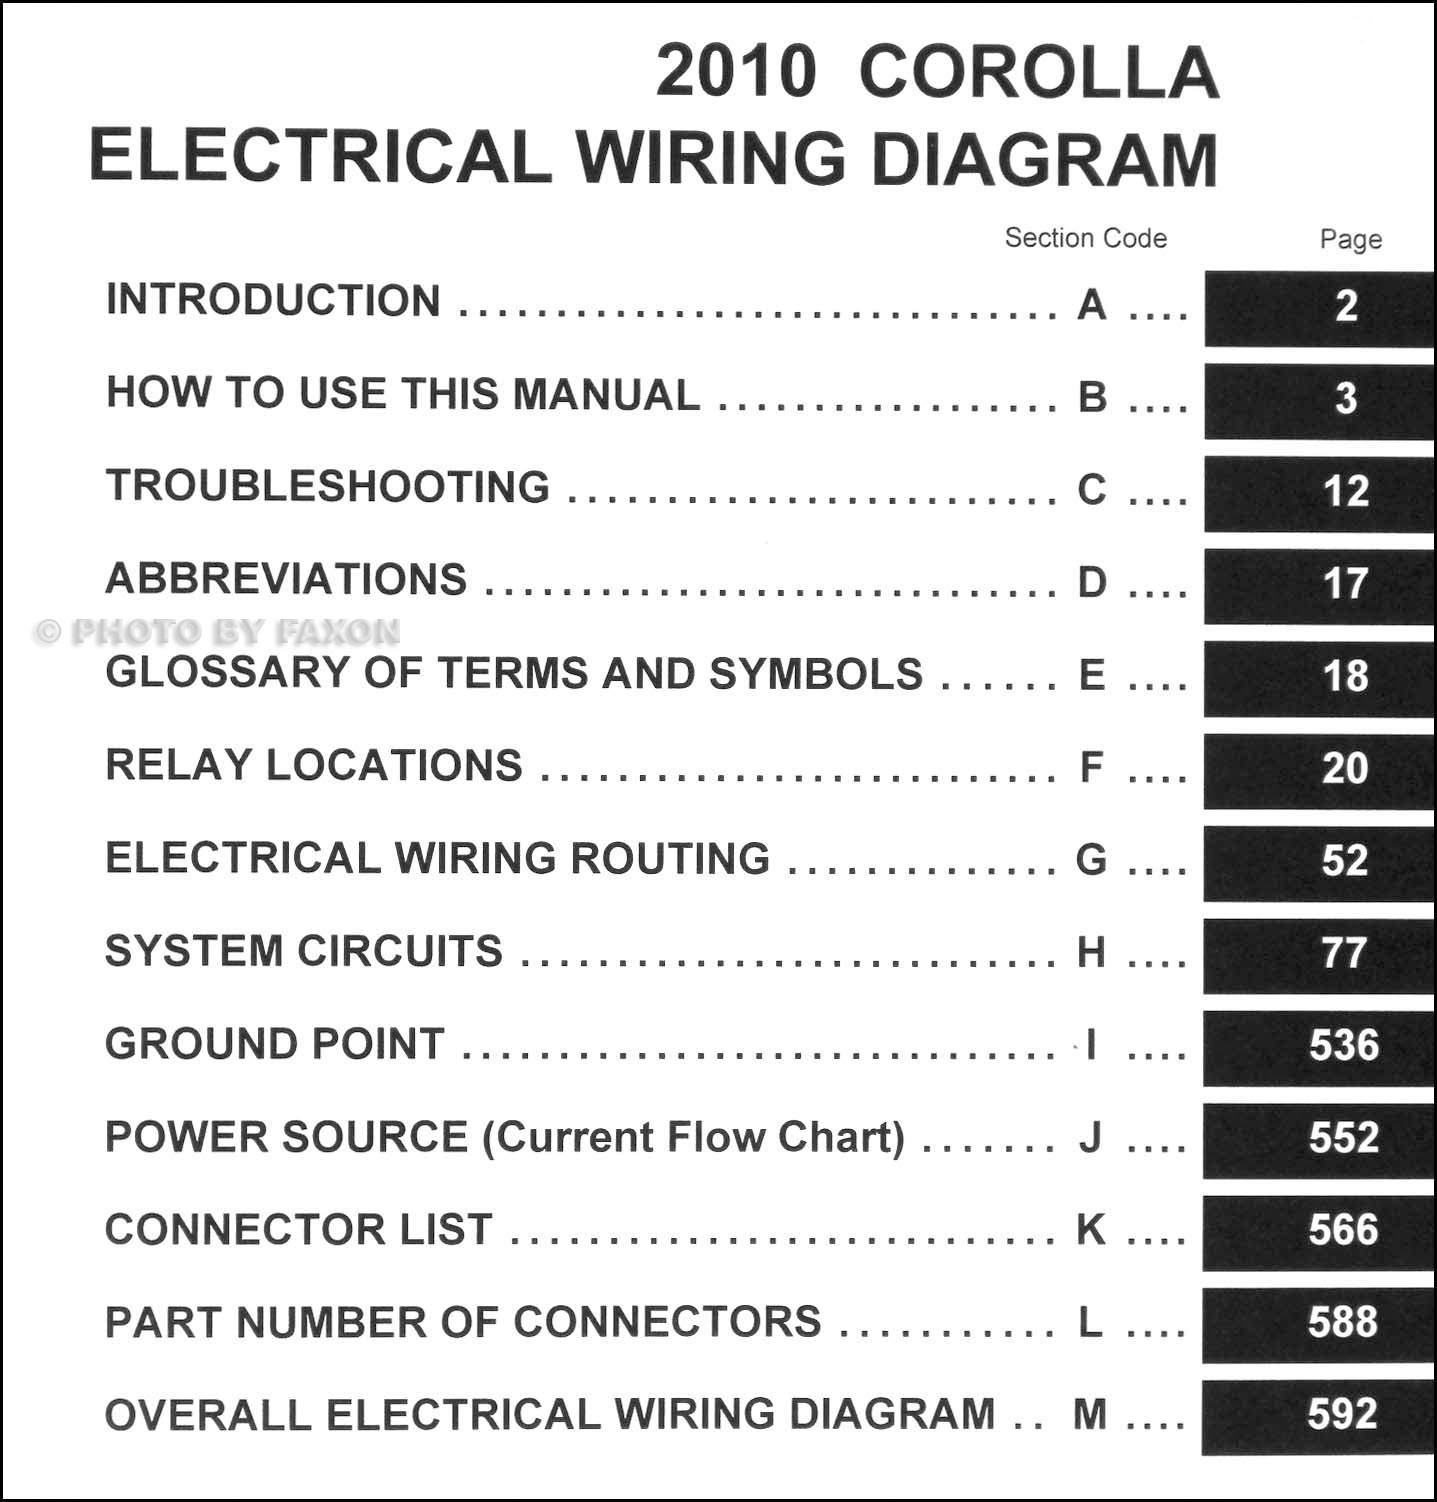 2014 toyota corolla wiring diagram 34 wiring diagram 2007 toyota corolla fuse box layout 07 toyota corolla fuse box diagram